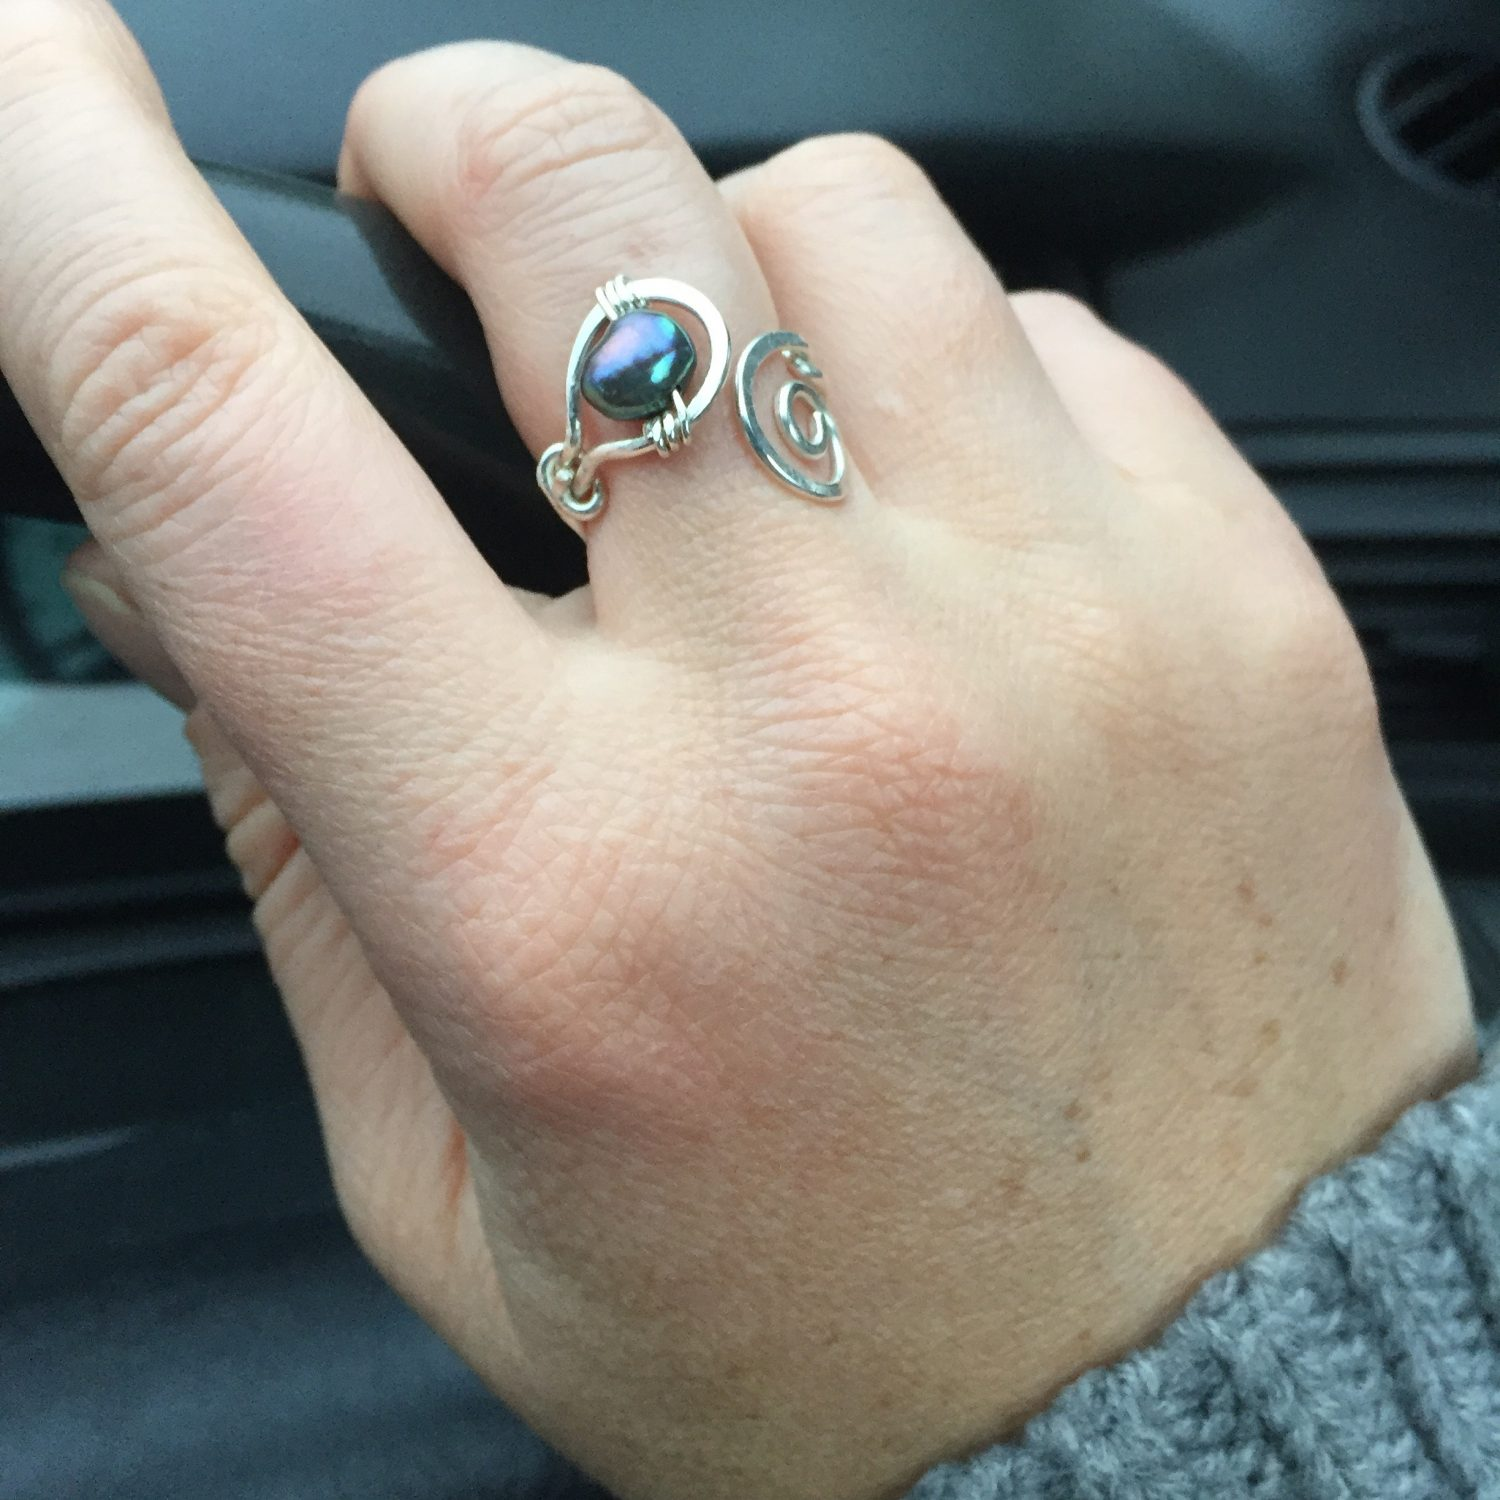 Wearing the Pearl and Spiral Koru Ring while out and about